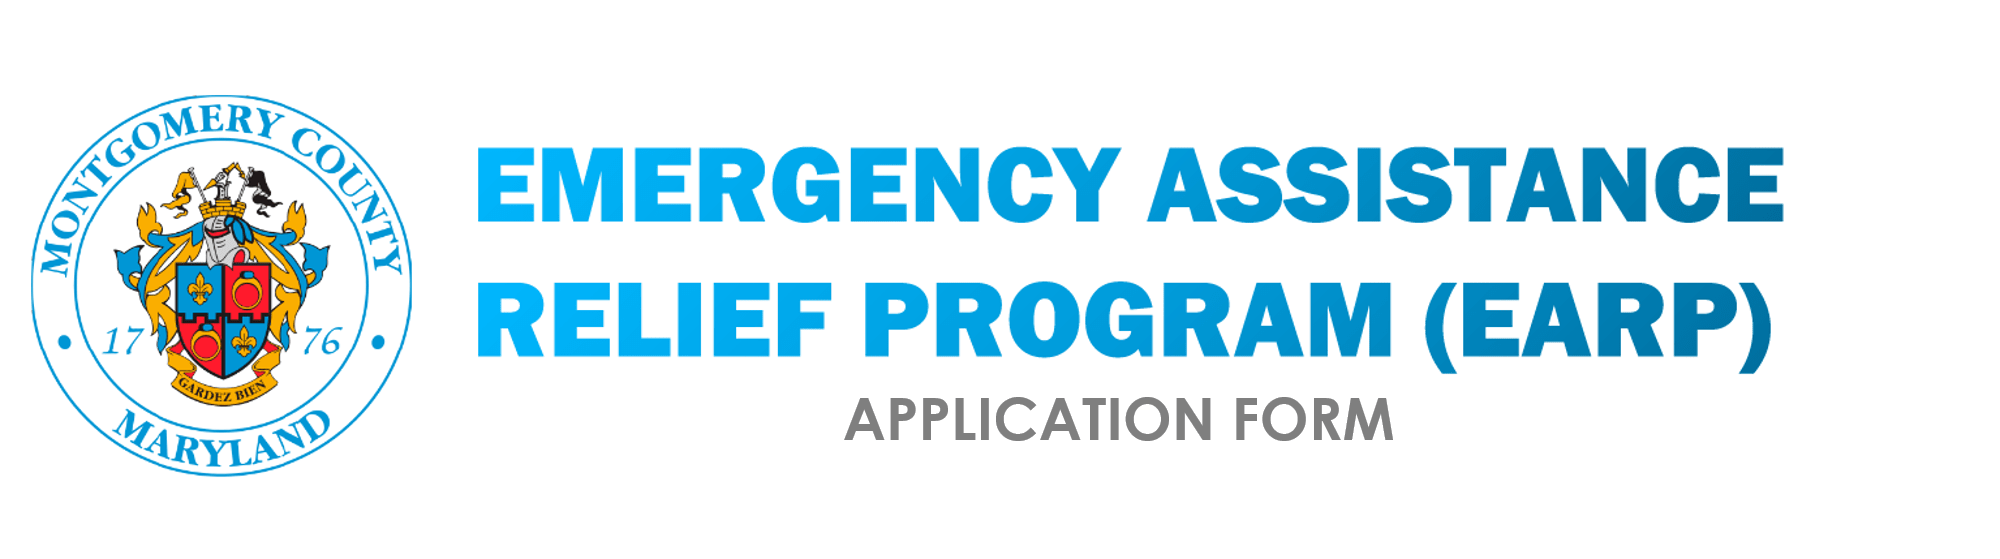 Emergency Assistance Relief Program (EARP)